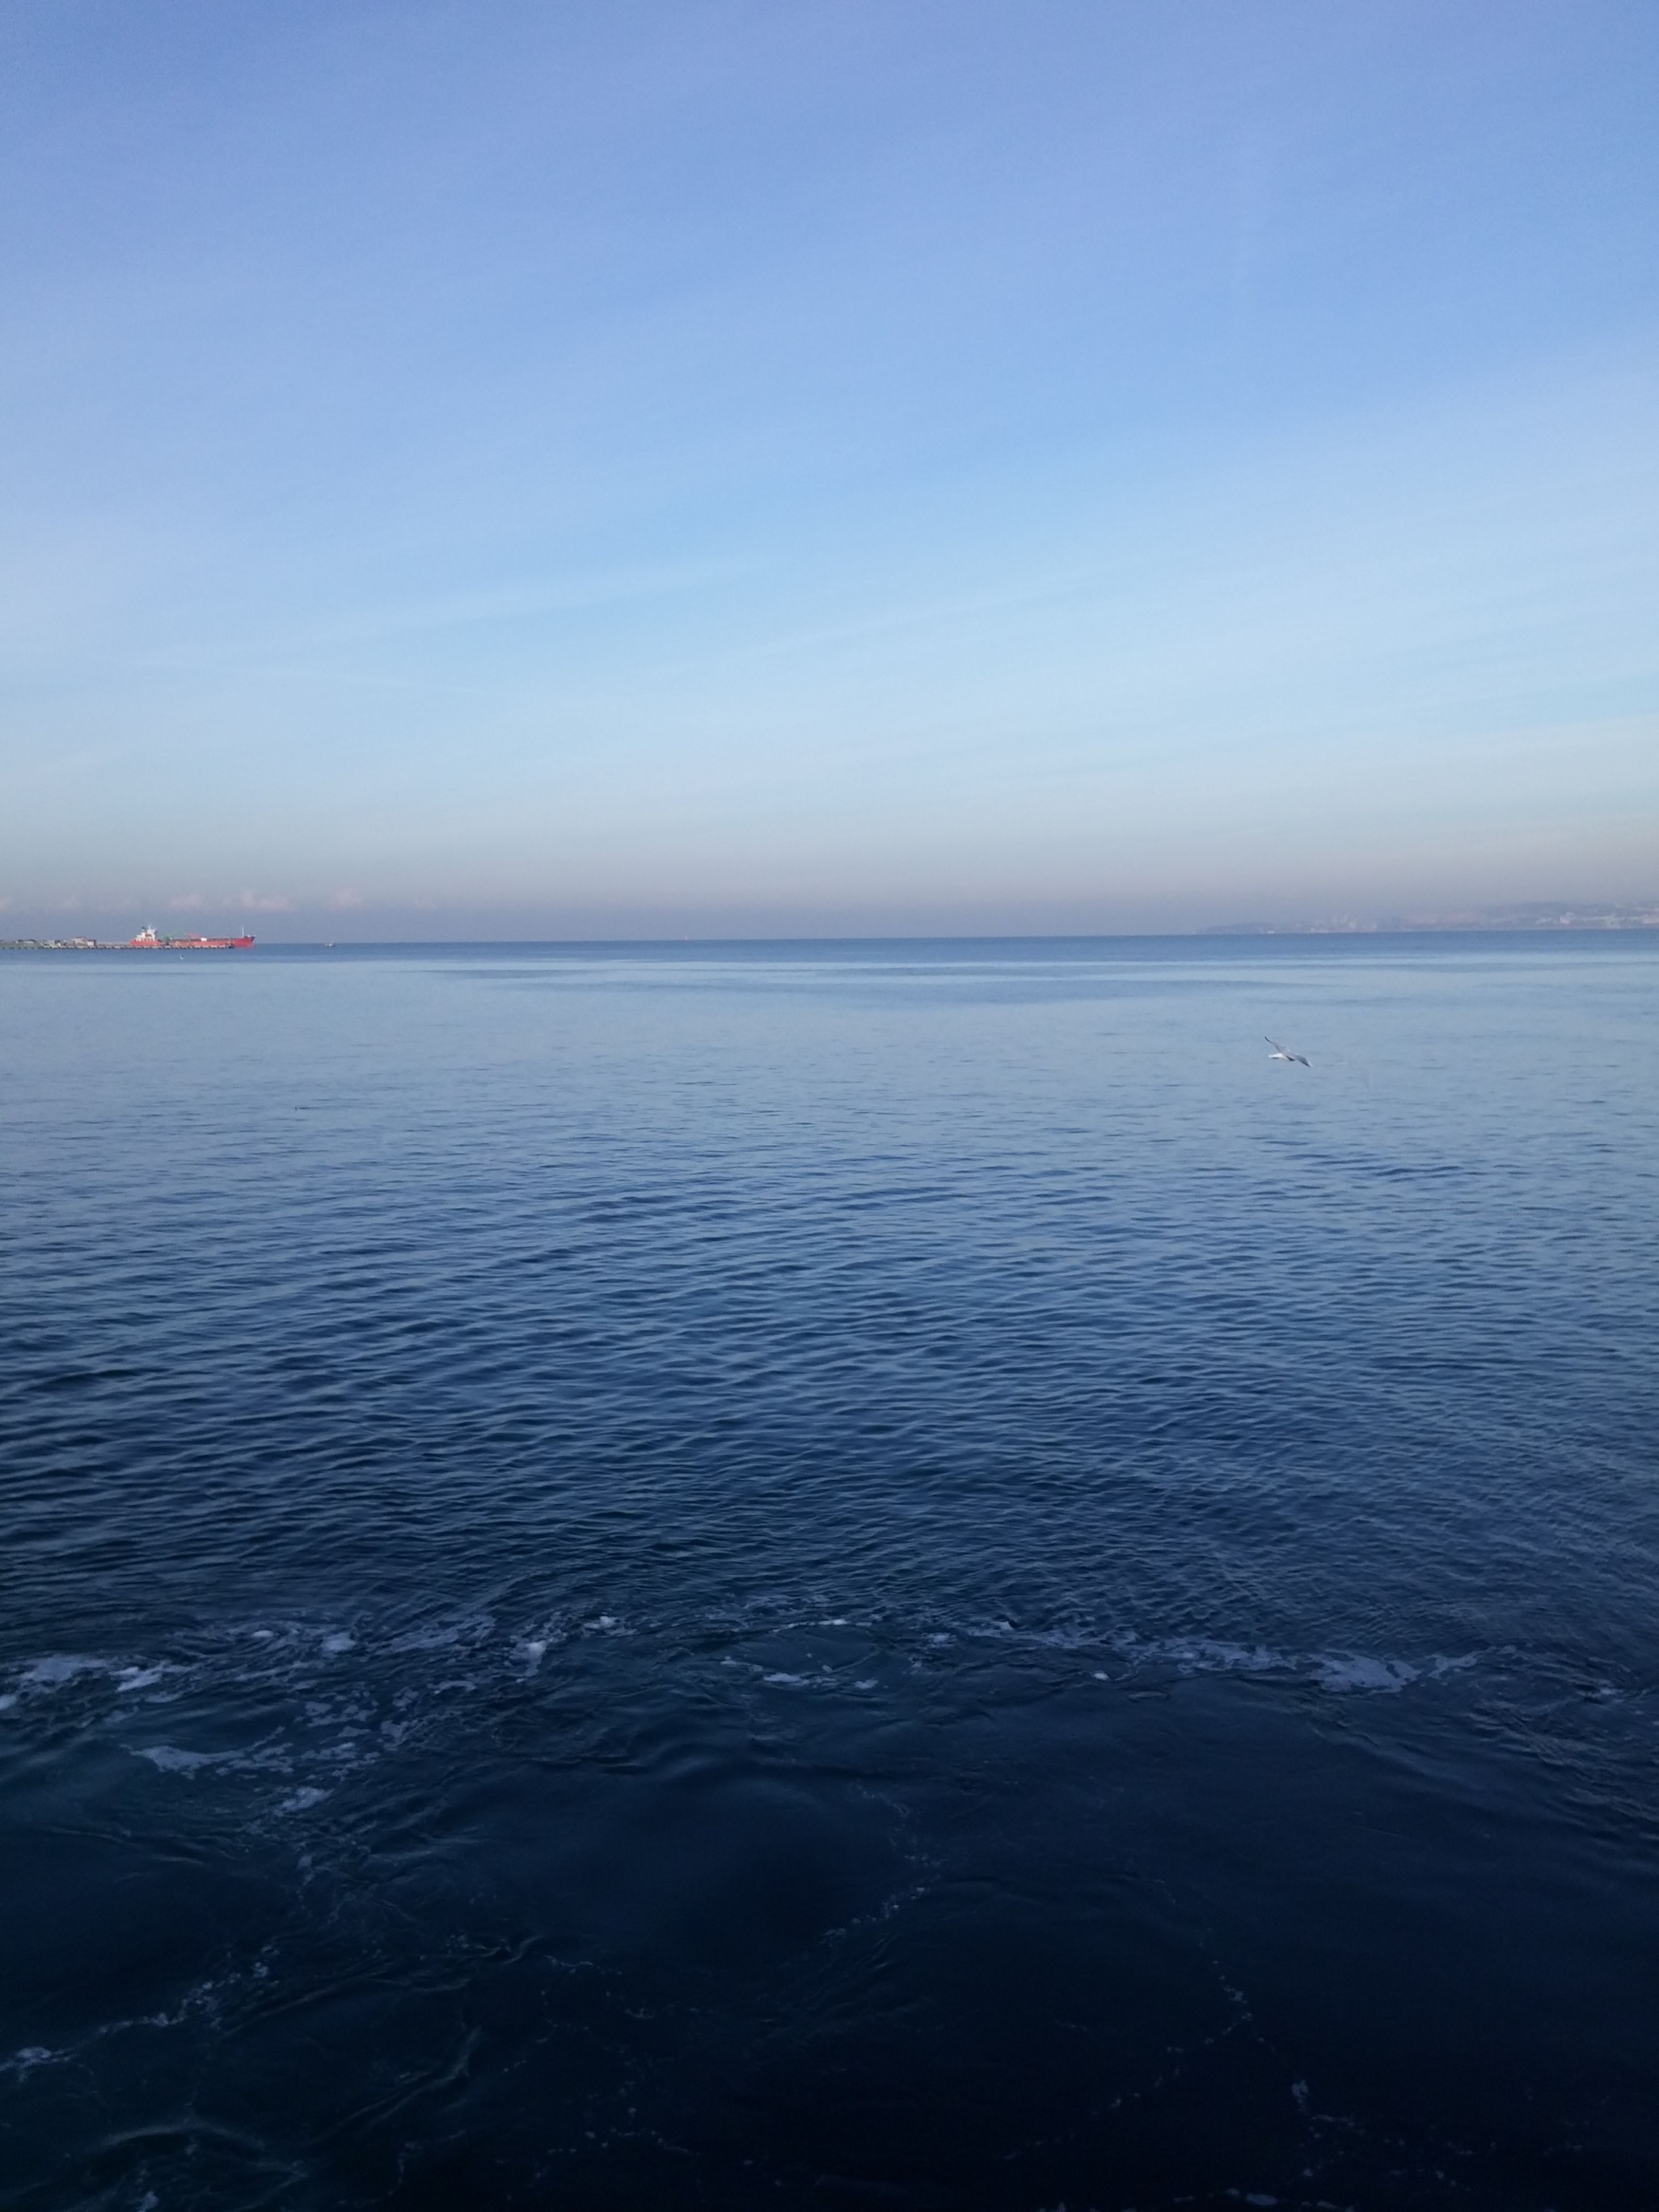 sea, horizon over water, water, tranquility, scenics, tranquil scene, beauty in nature, blue, outdoors, day, sky, nature, no people, clear sky, beach